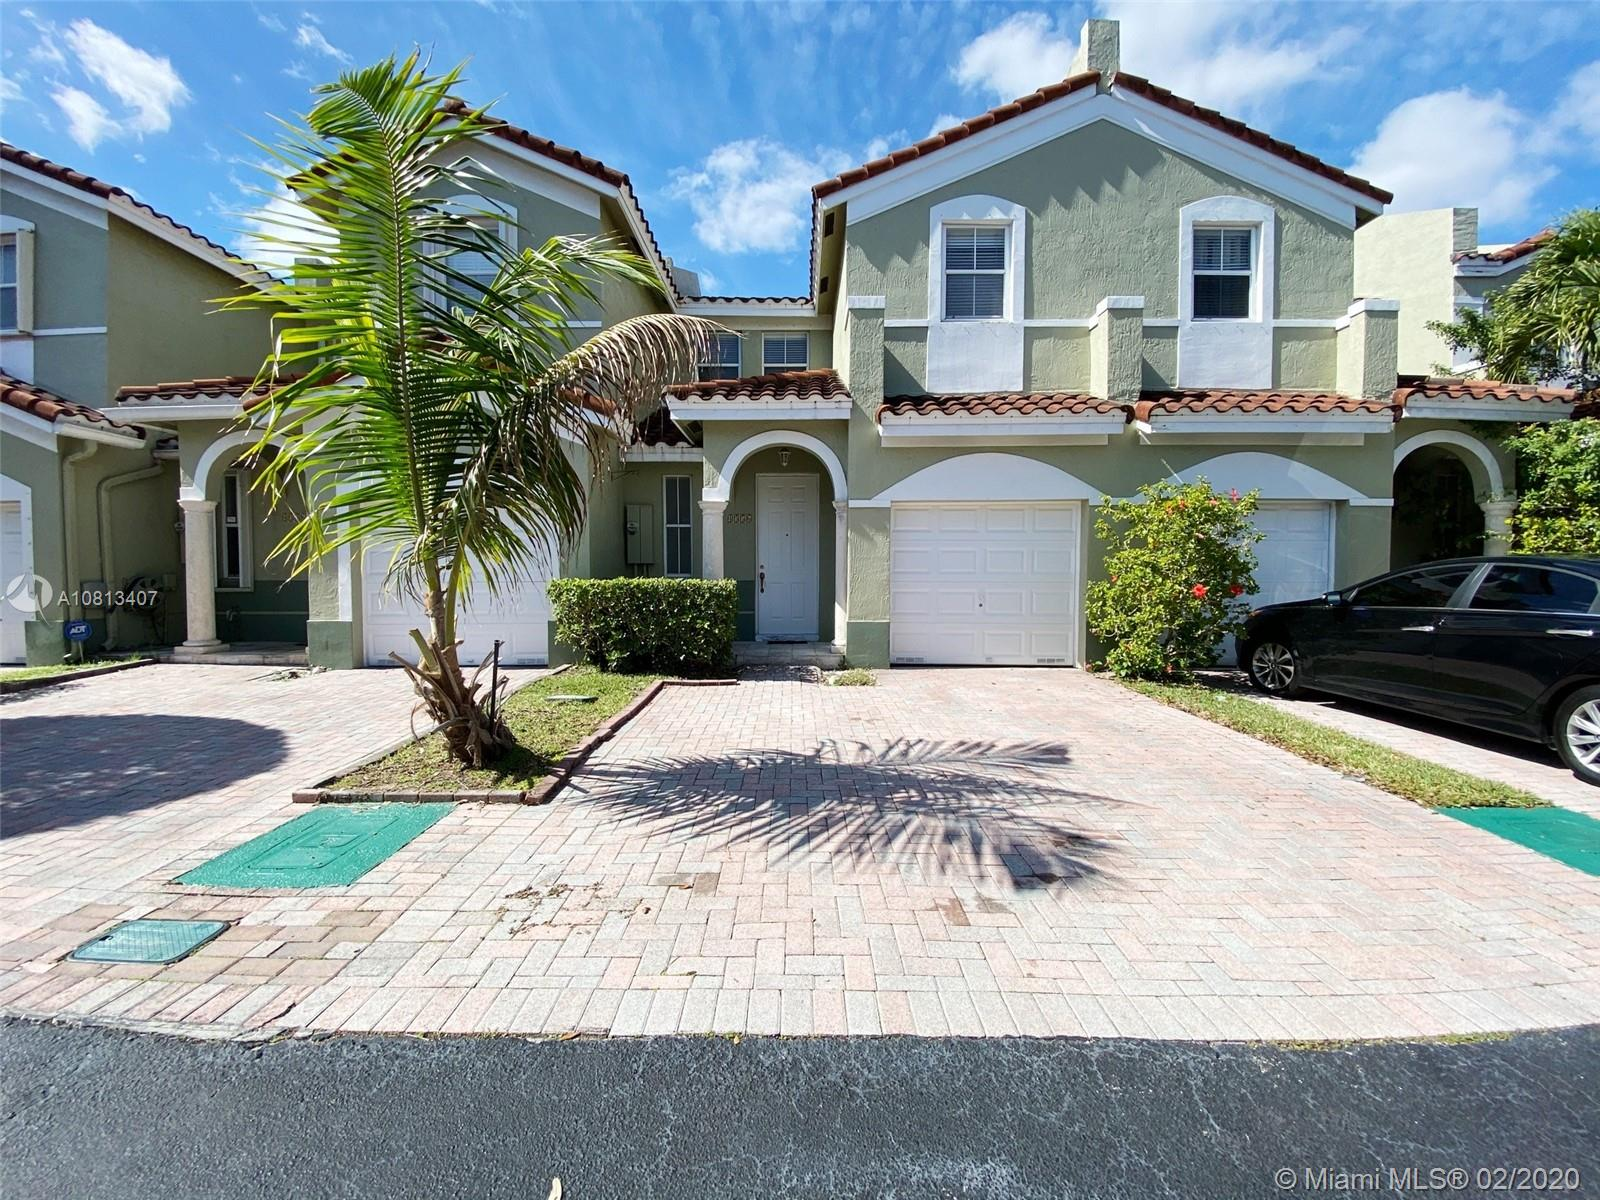 4356 NW 116th Ave #4356 For Sale A10813407, FL